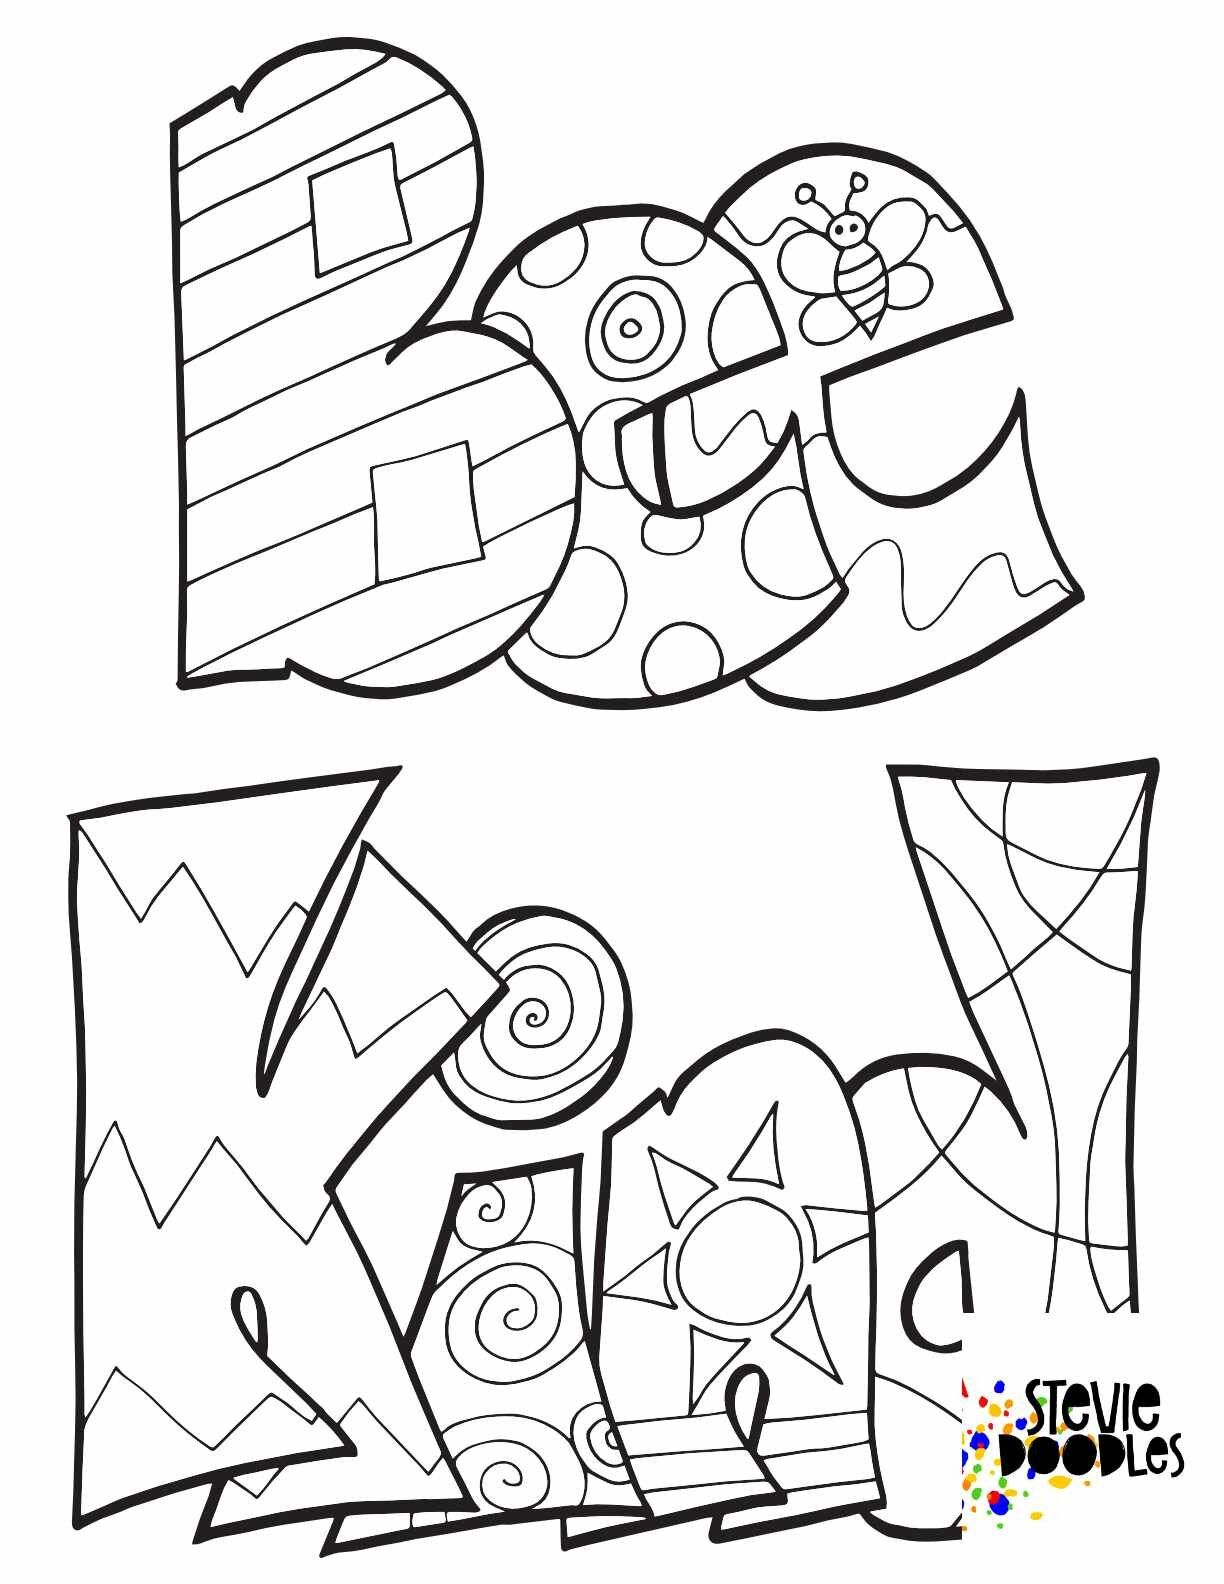 Free Coloring Pages Stevie Doodles Free Coloring Pages Crayola Coloring Pages Love Coloring Pages